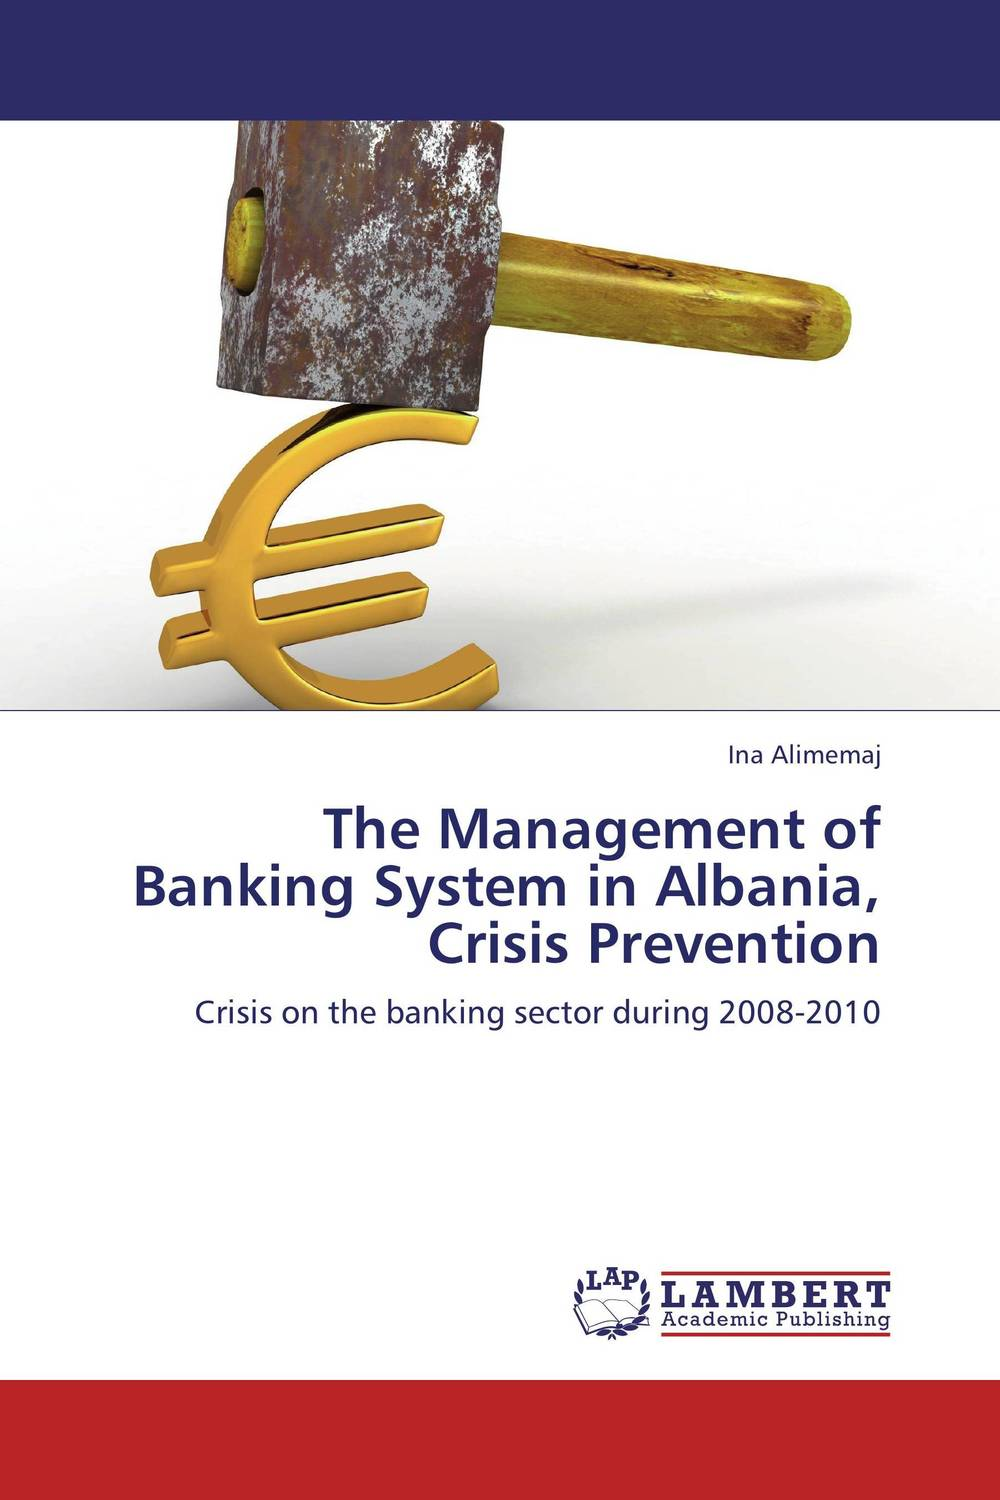 The Management of Banking System in Albania, Crisis Prevention